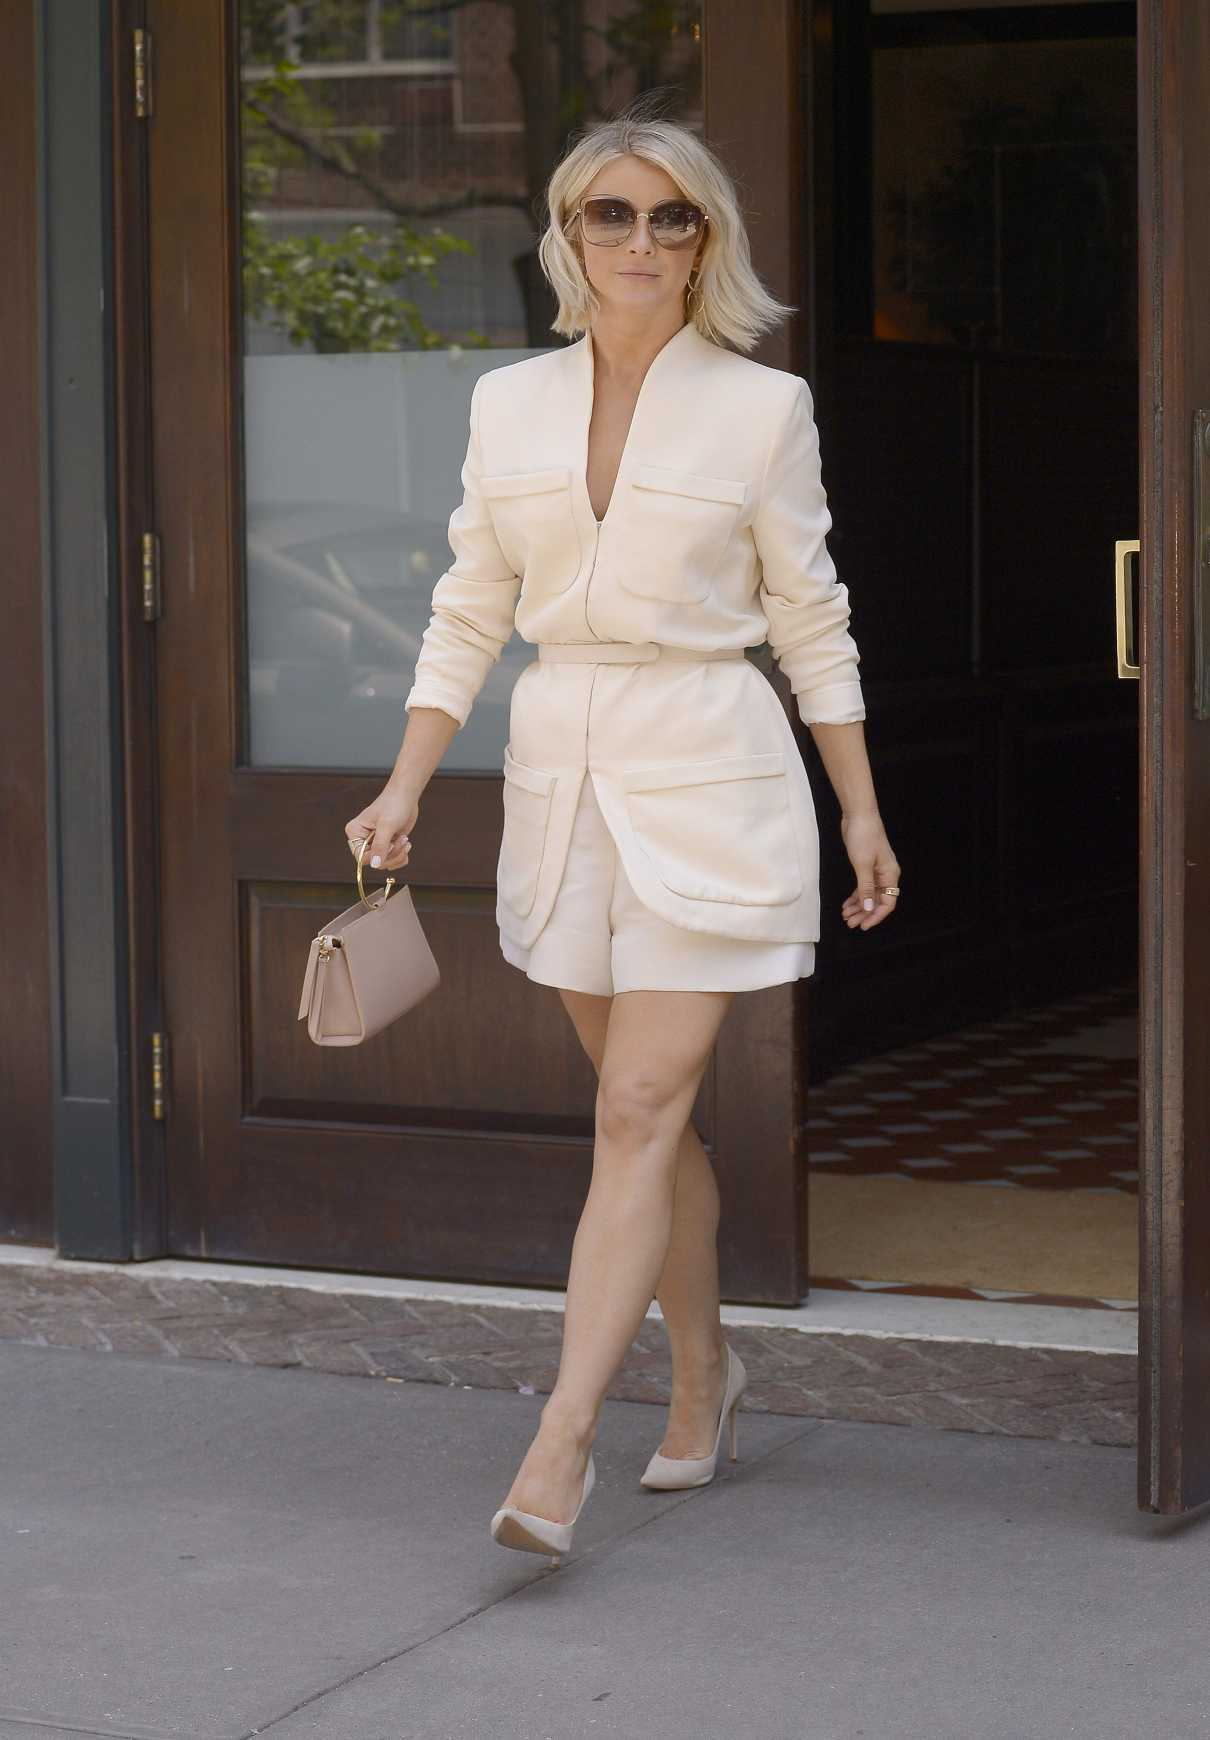 Julianne Hough in a Beige Suit